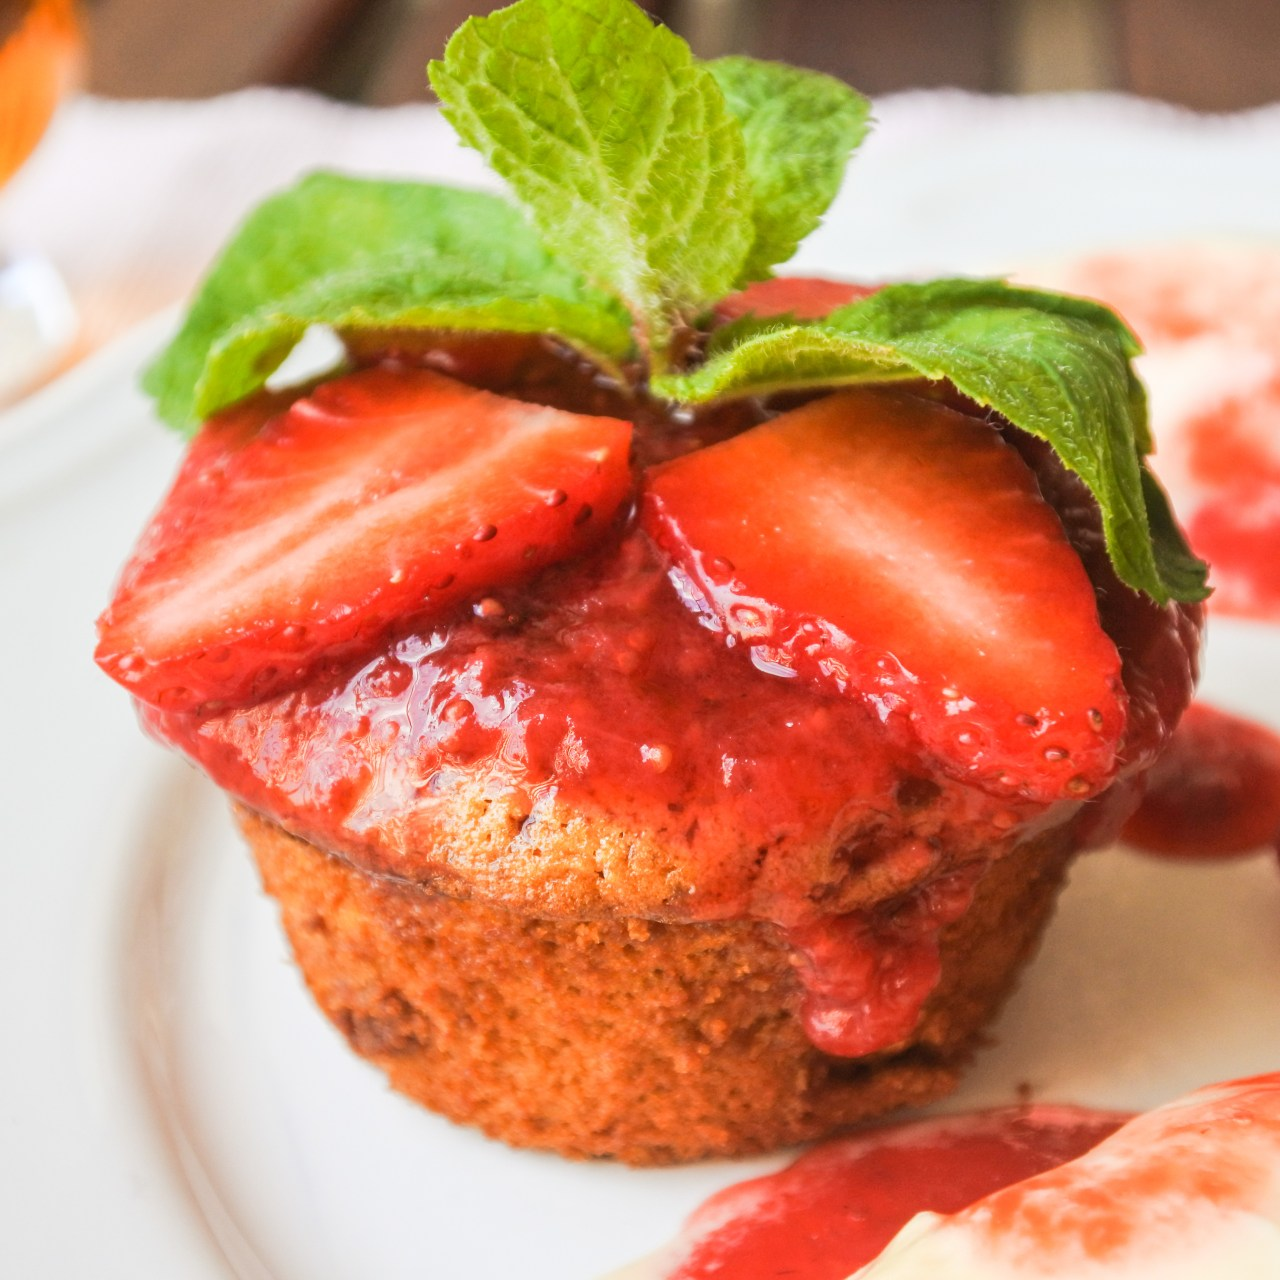 Dulce de leche cupcake topped with strawberry sauce, sliced strawberries and a sprig of mint